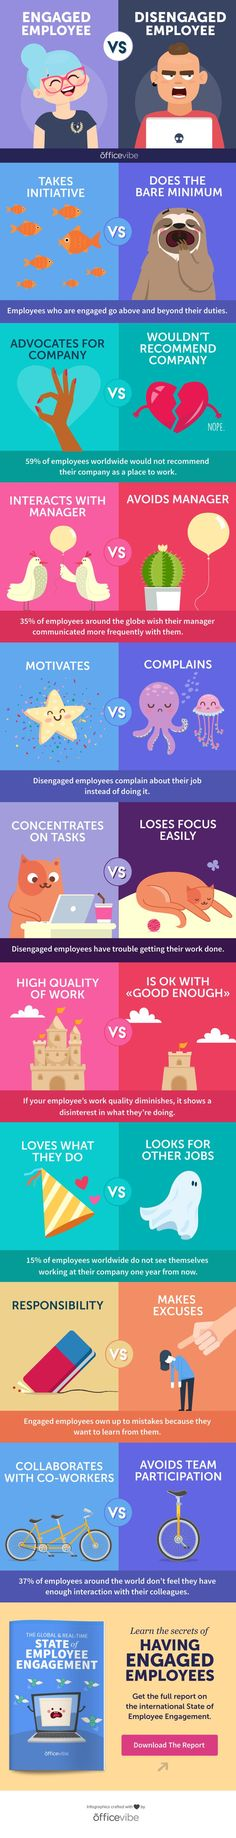 Infographic: Nine Signs Of Engaged VS Disengaged Employees - http://DesignTAXI.com